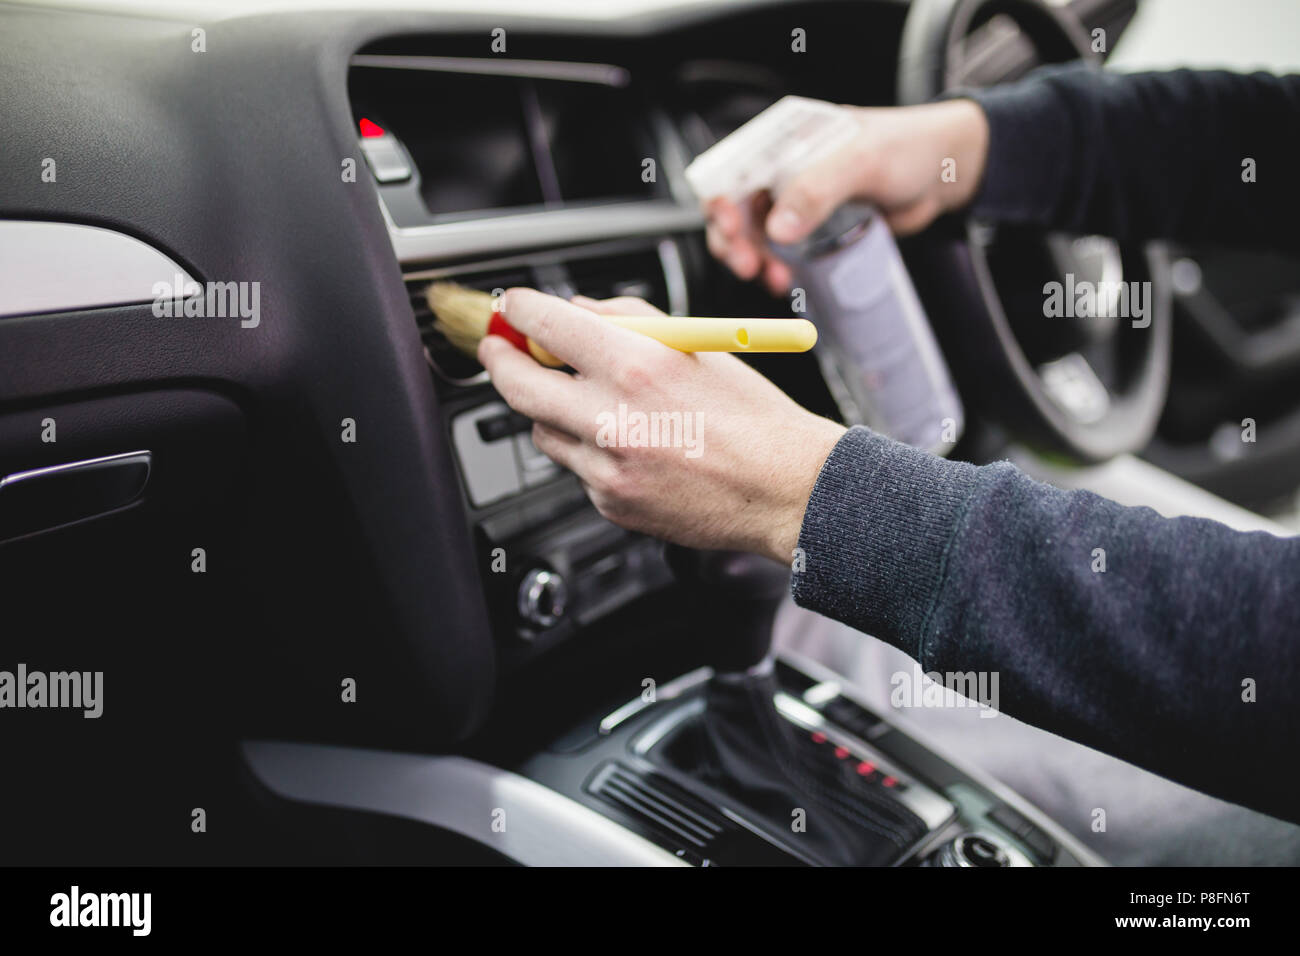 a man cleaning car interior, car detailing (or valeting) concept